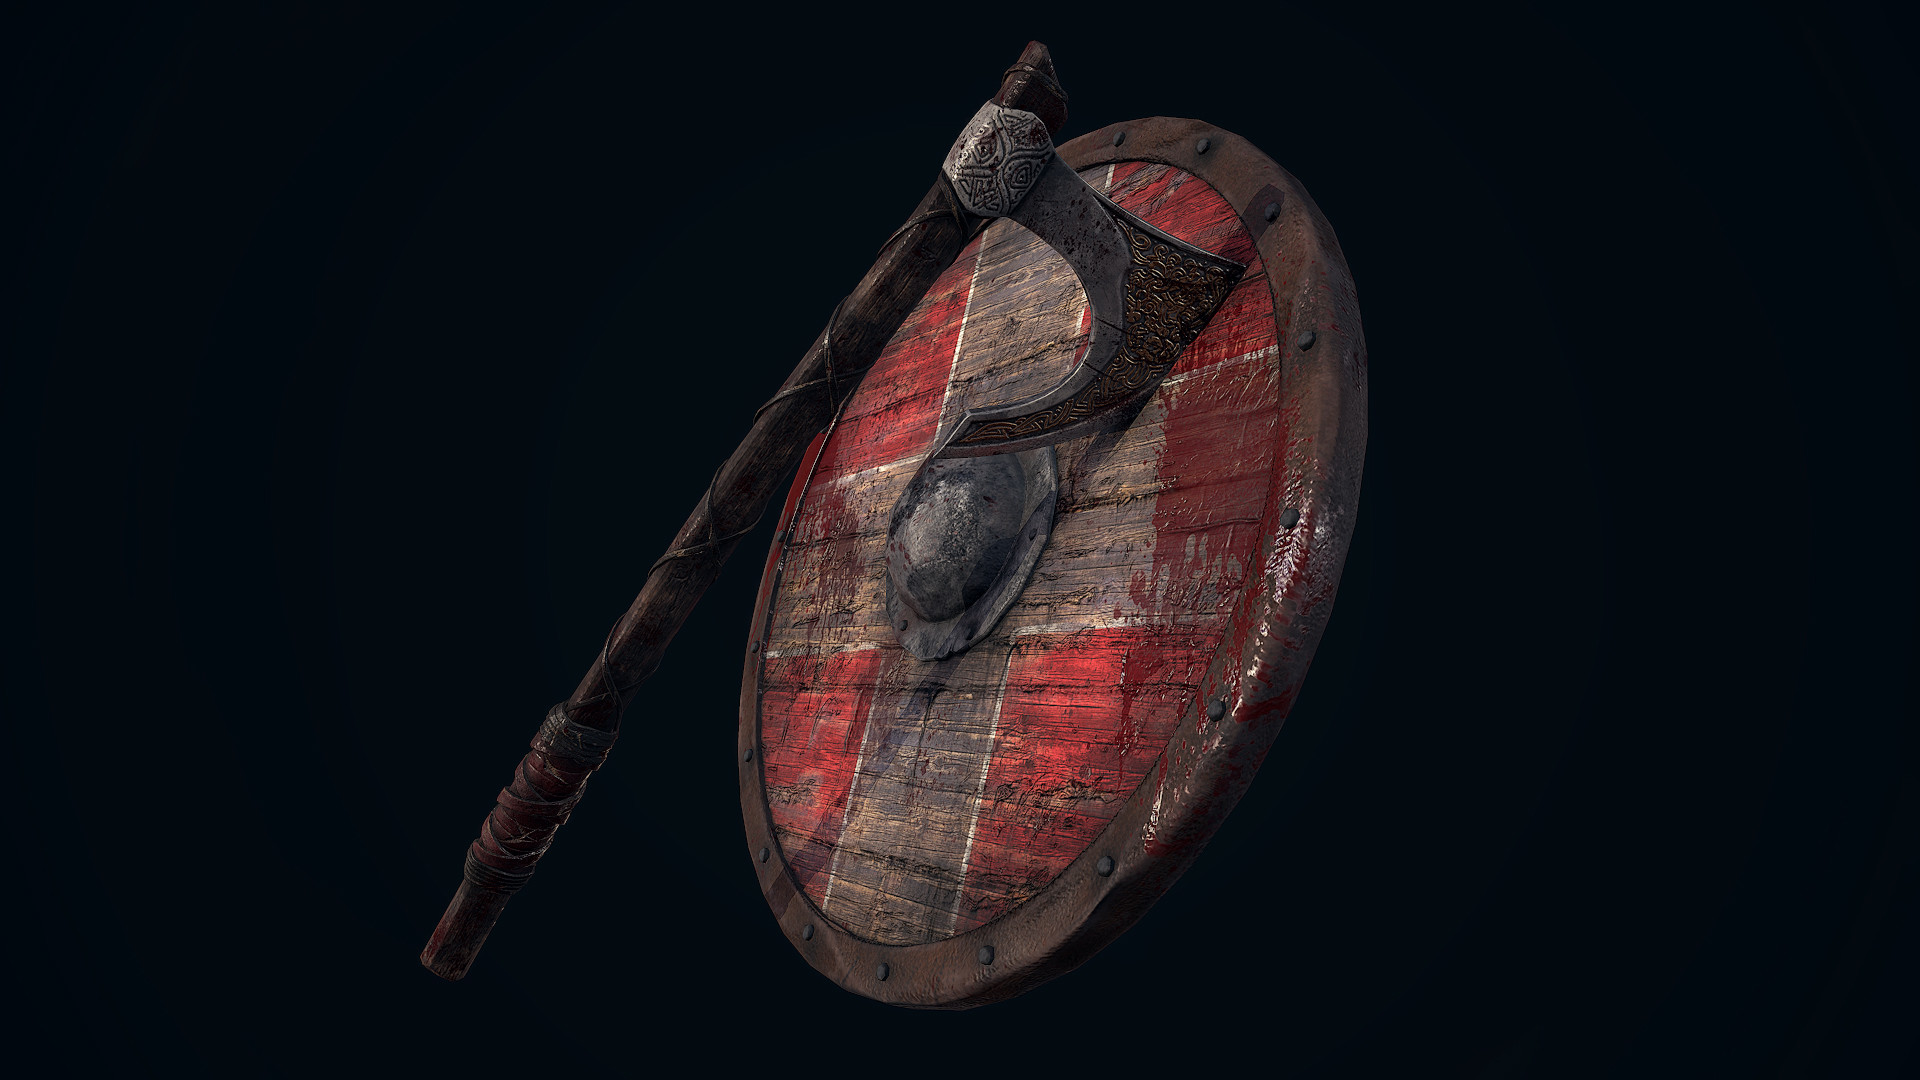 Andrew finch viking shield axe 0003 layer 2